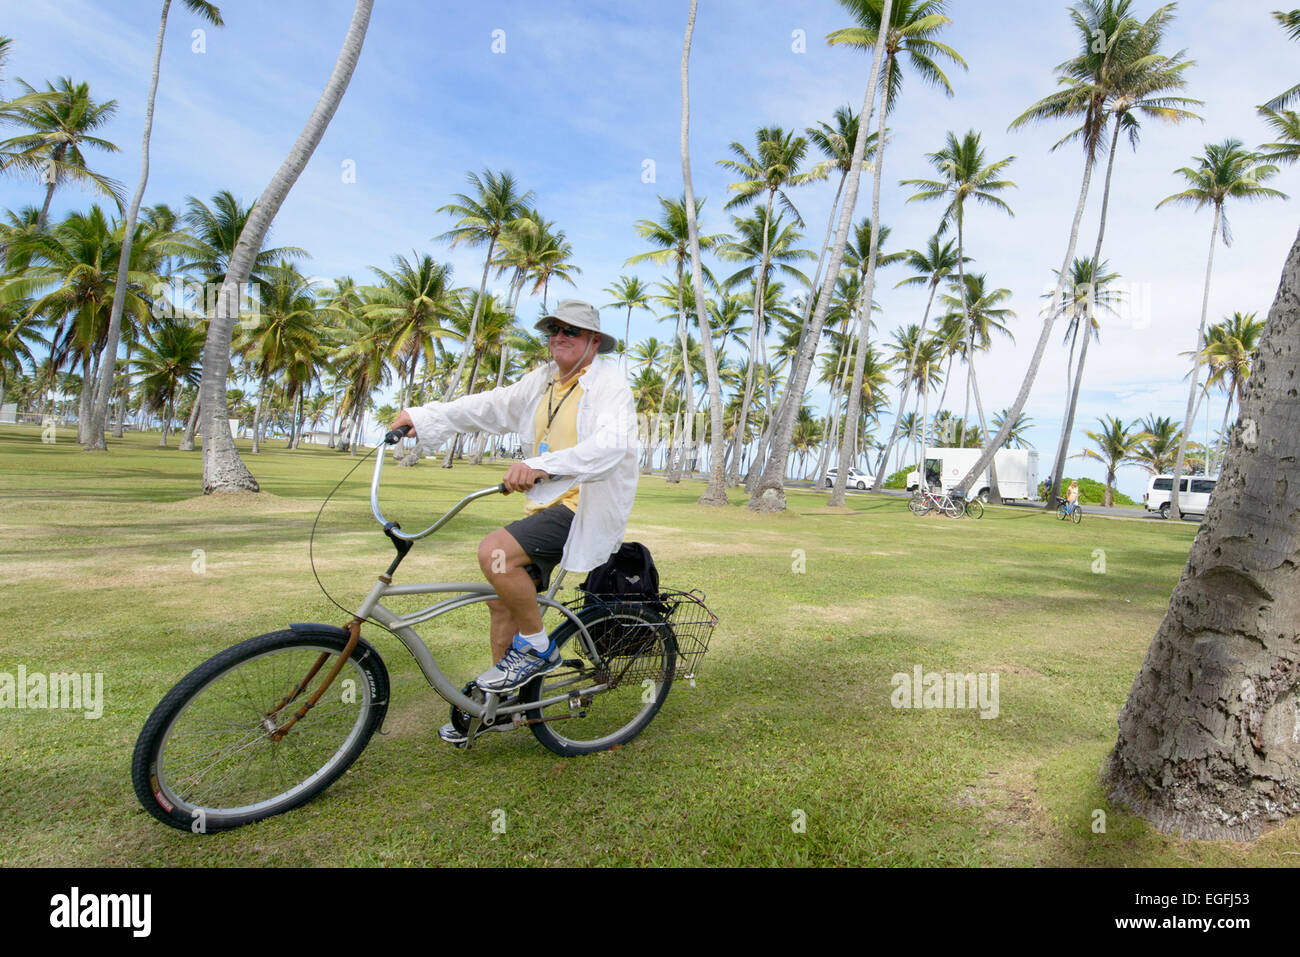 A resident rides a bicycle through a coconut palm grove February 21, 2015 in Kwajalein, Marshall Islands. Stock Photo